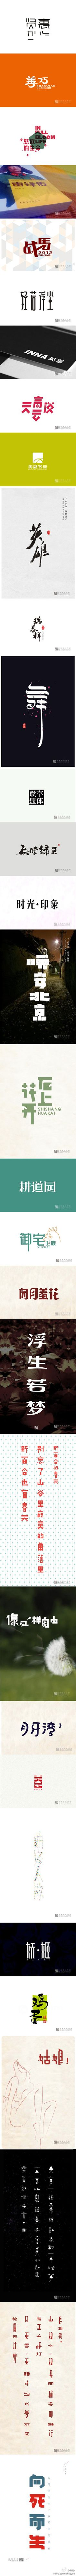 Chinese type play you don't know what the types mean, and it is beautiful, why? Fascinating.